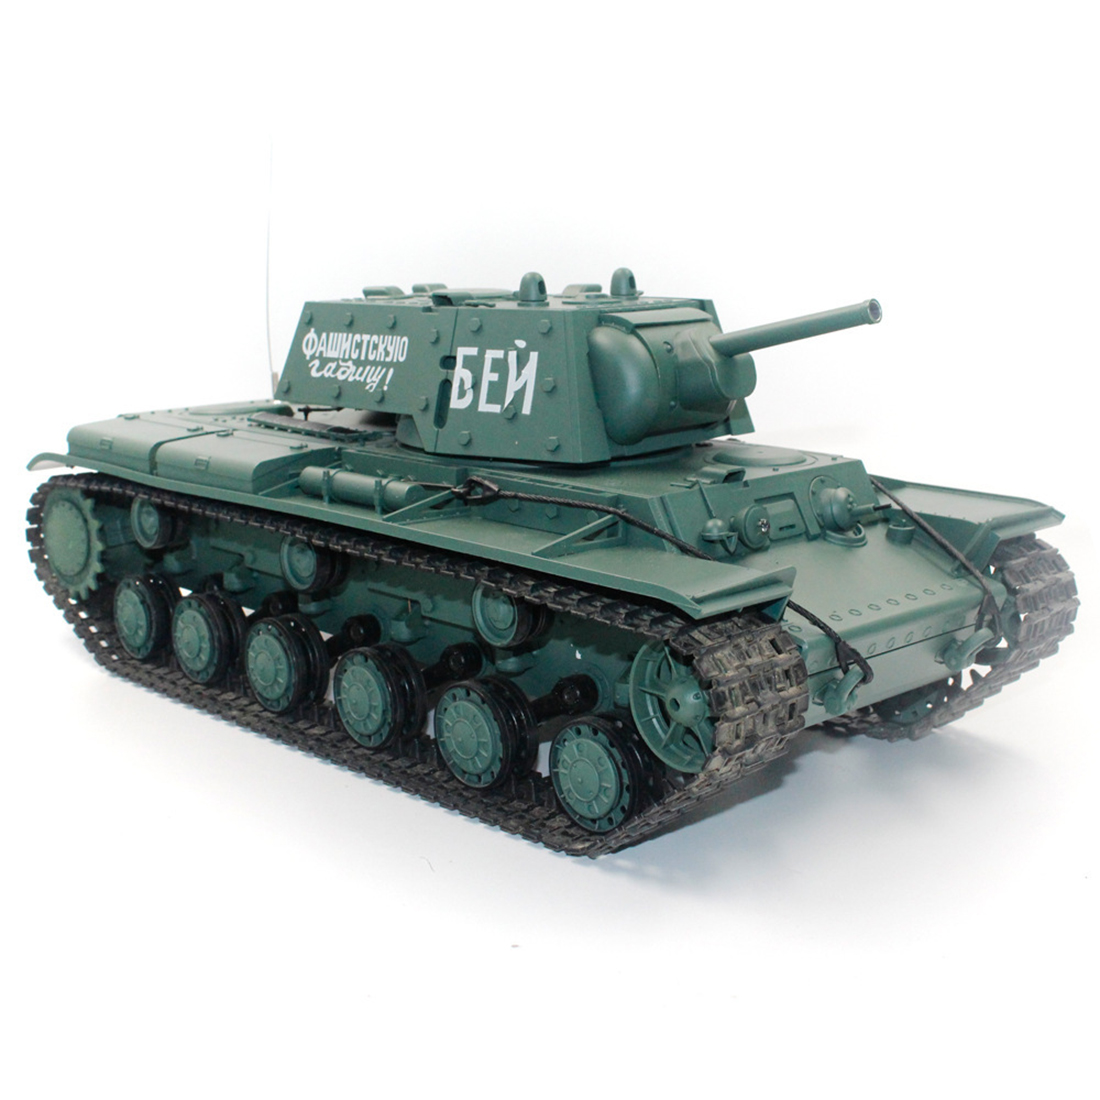 1:16 Soviet KV - 1 's Heavy Tank 2.4G Remote Control Model Military Tank With Sound Smoke Shooting Effect - Basic Edition